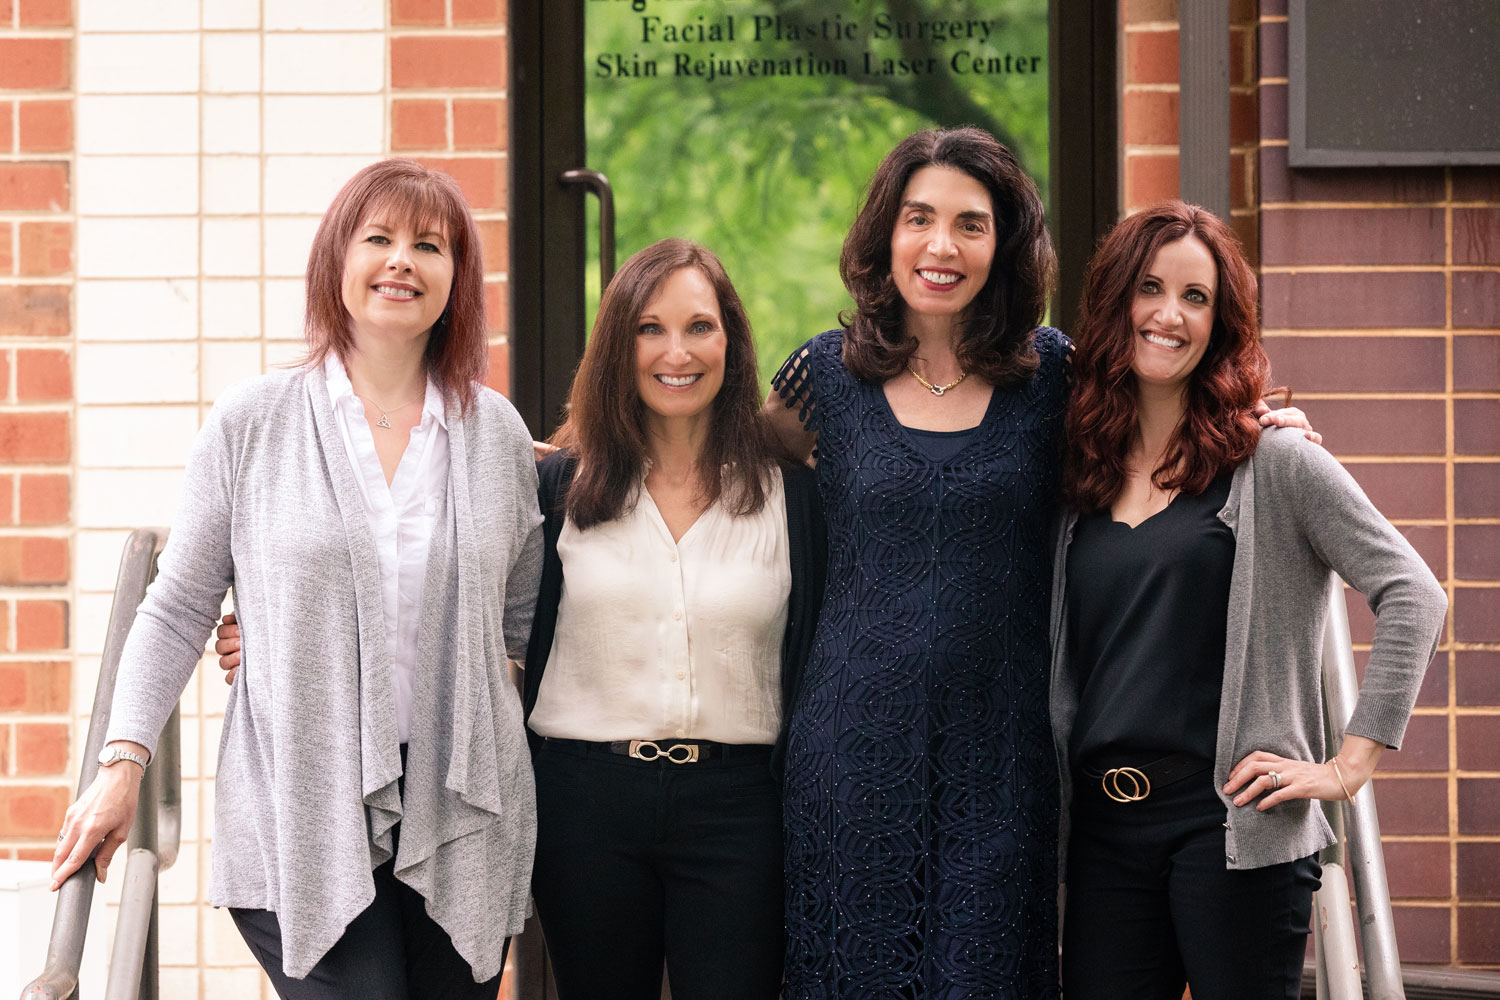 Facial plastic surgery team at Dr. Eugenie Brunner's office in Princeton, NJ